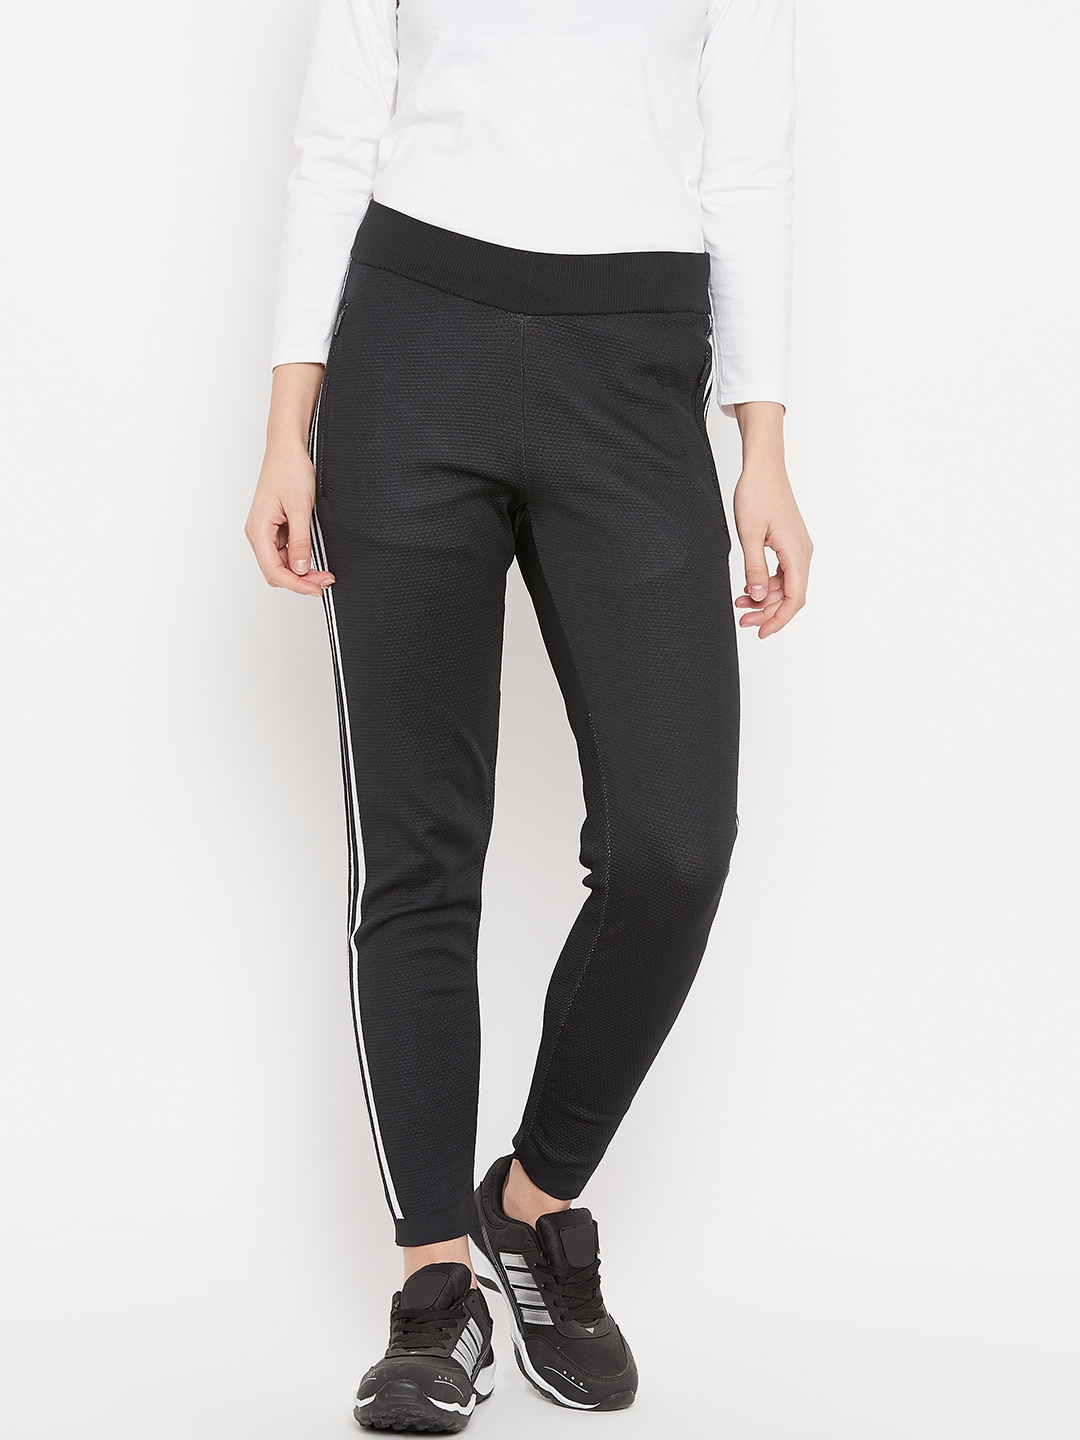 3896651158d adidas Track Pants - Buy Track Pants from adidas Online